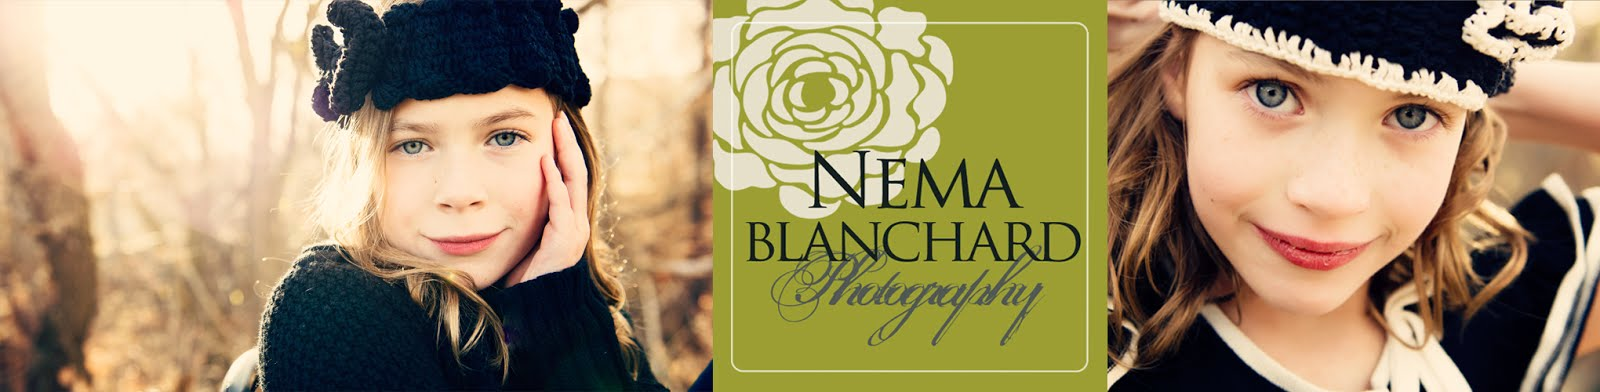 Nema Blanchard Photography